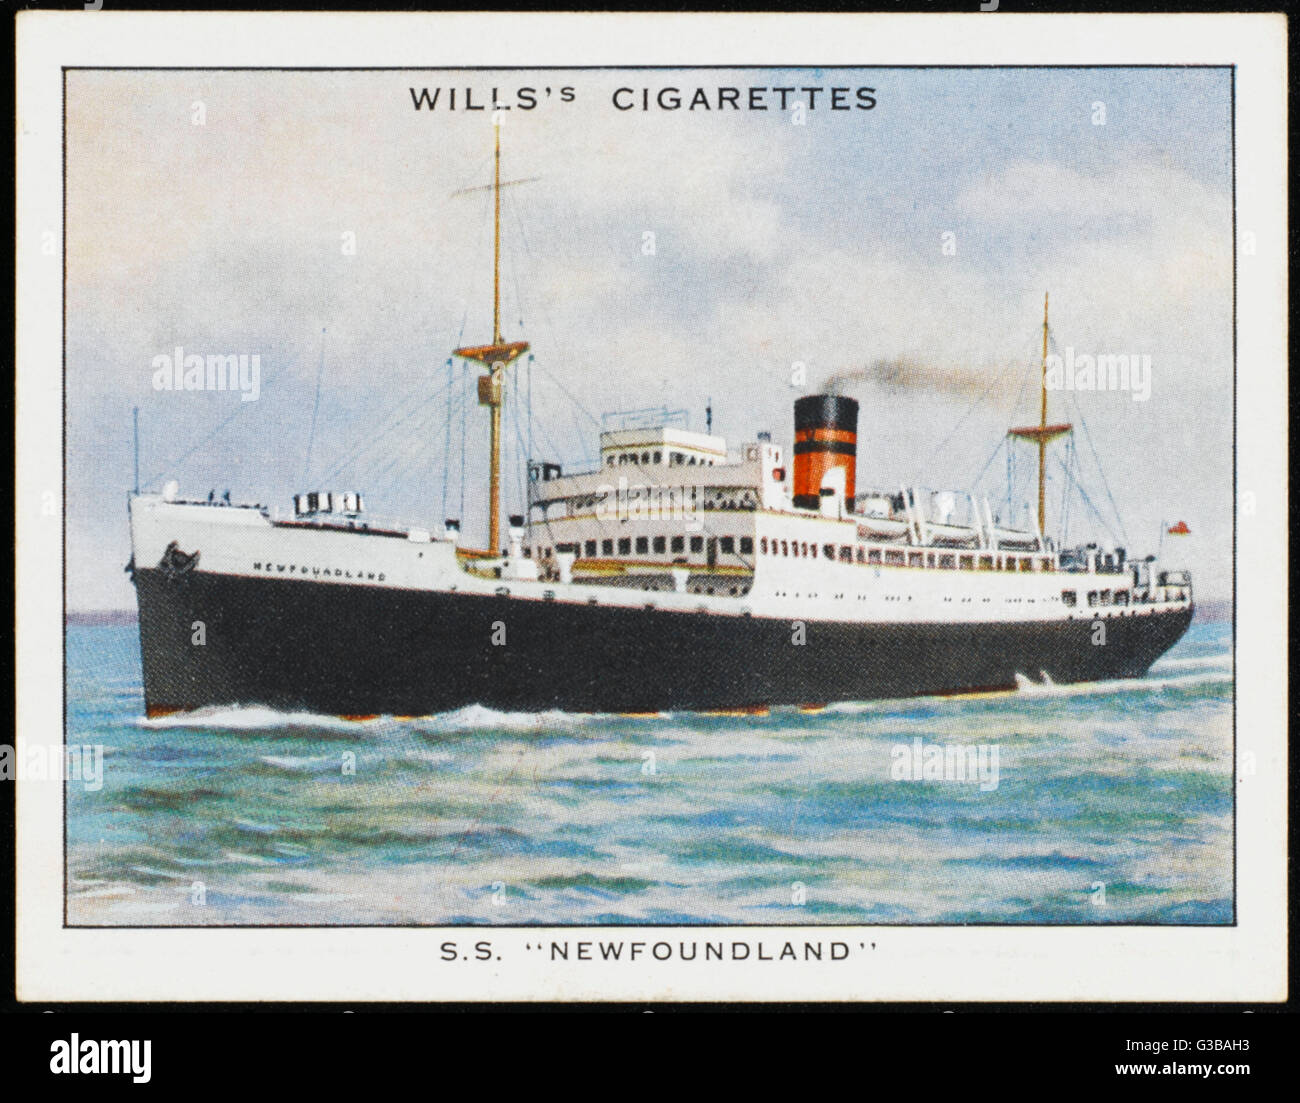 Passenger steamship of the  Furness line, preseumably  sailing between Britain and  Canada.      Date: 1925 - Stock Image